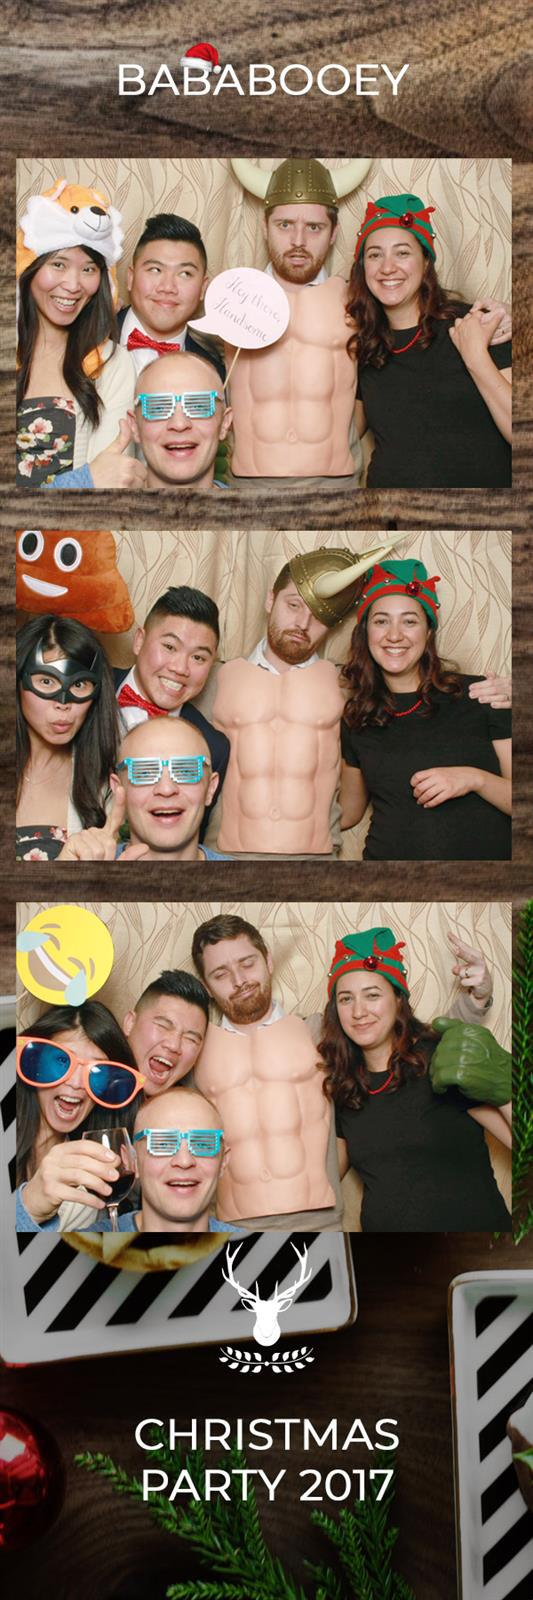 3 Images On A Vertical 2 6 Corporate Christmas Party